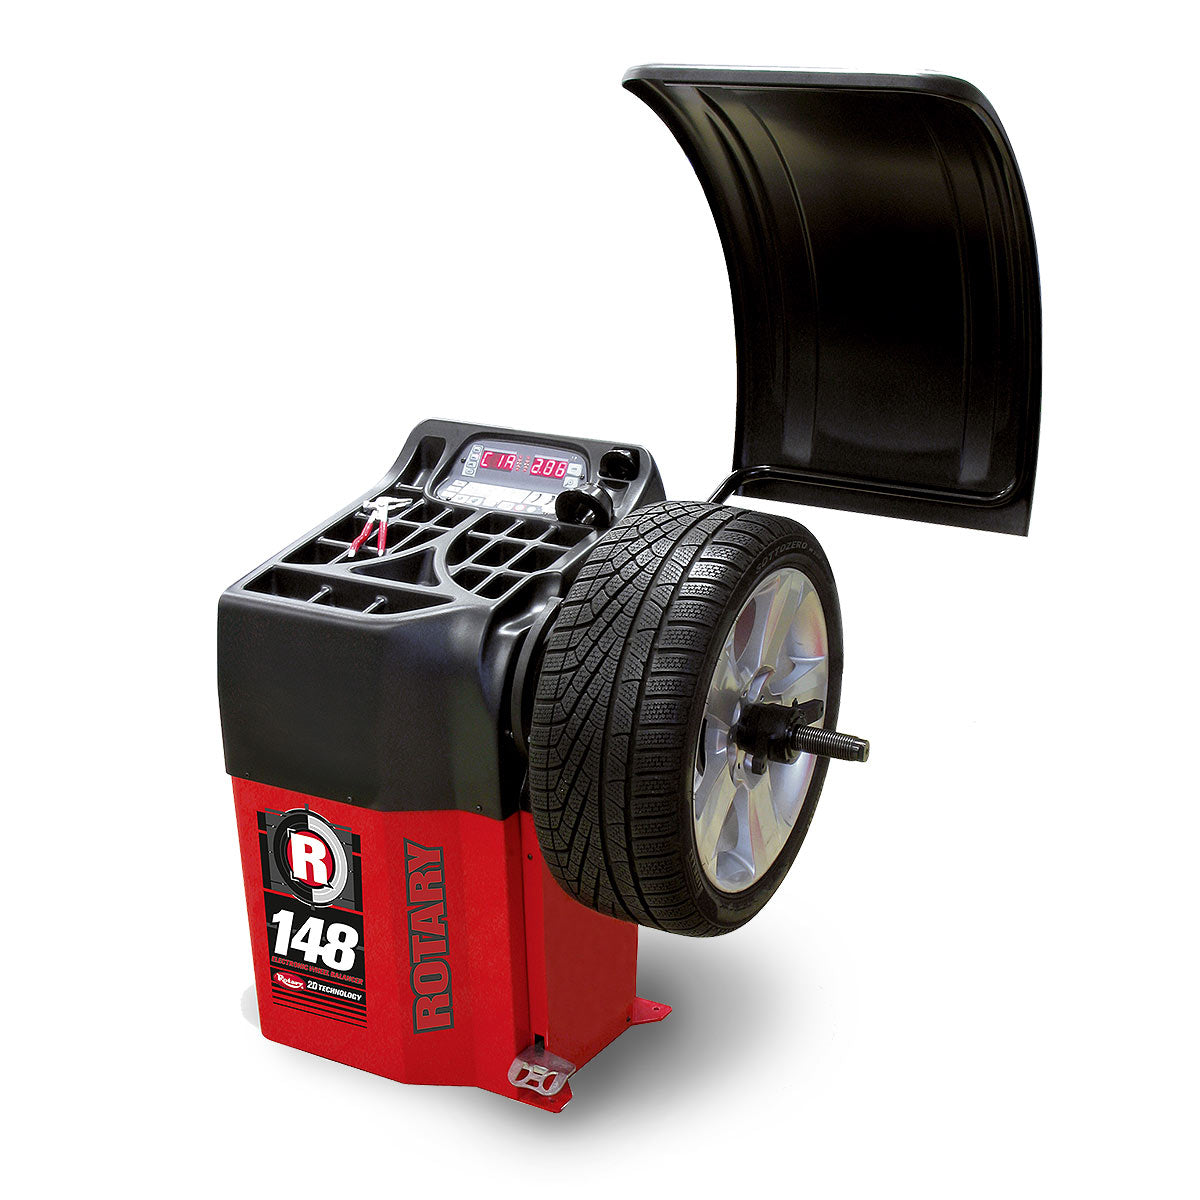 R148 Pro Shop 2D Wheel Balancer